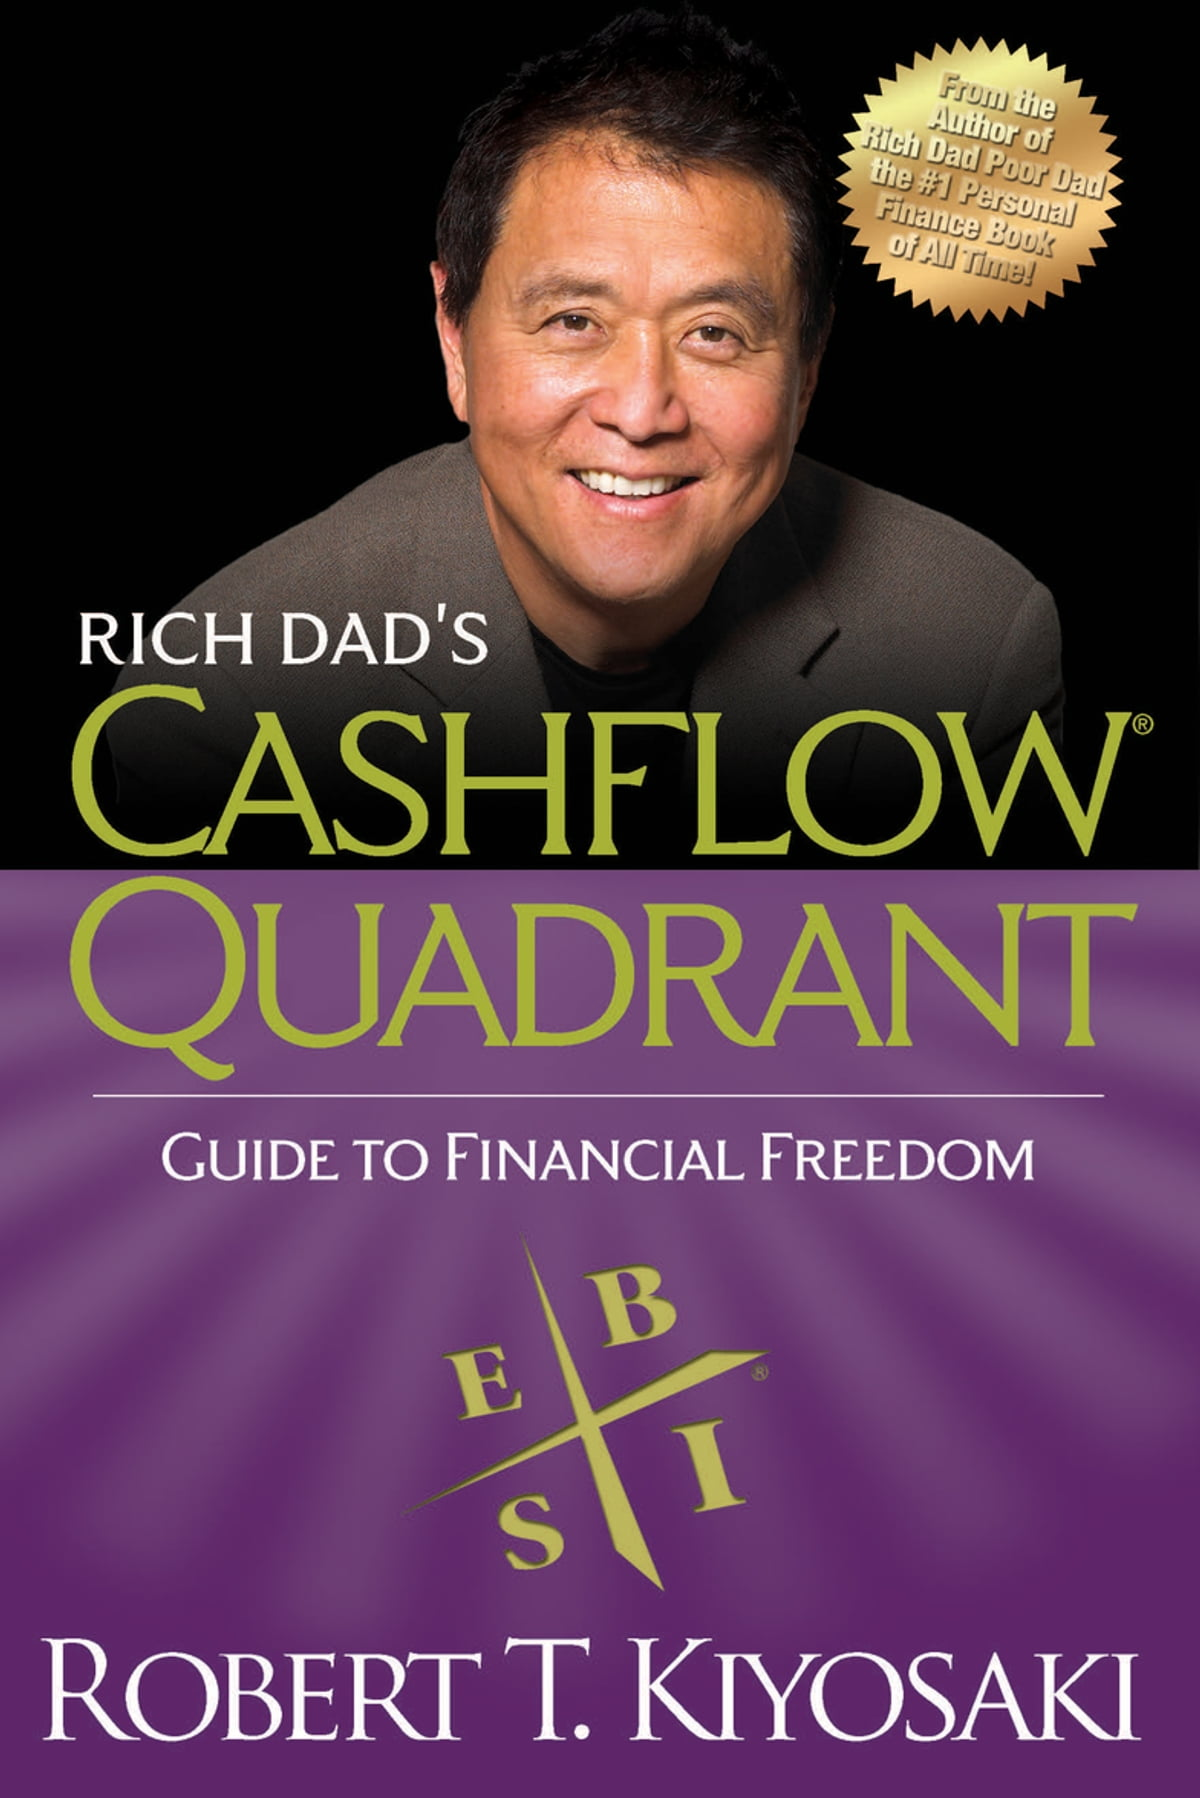 cashflow quadrant book pdf free download